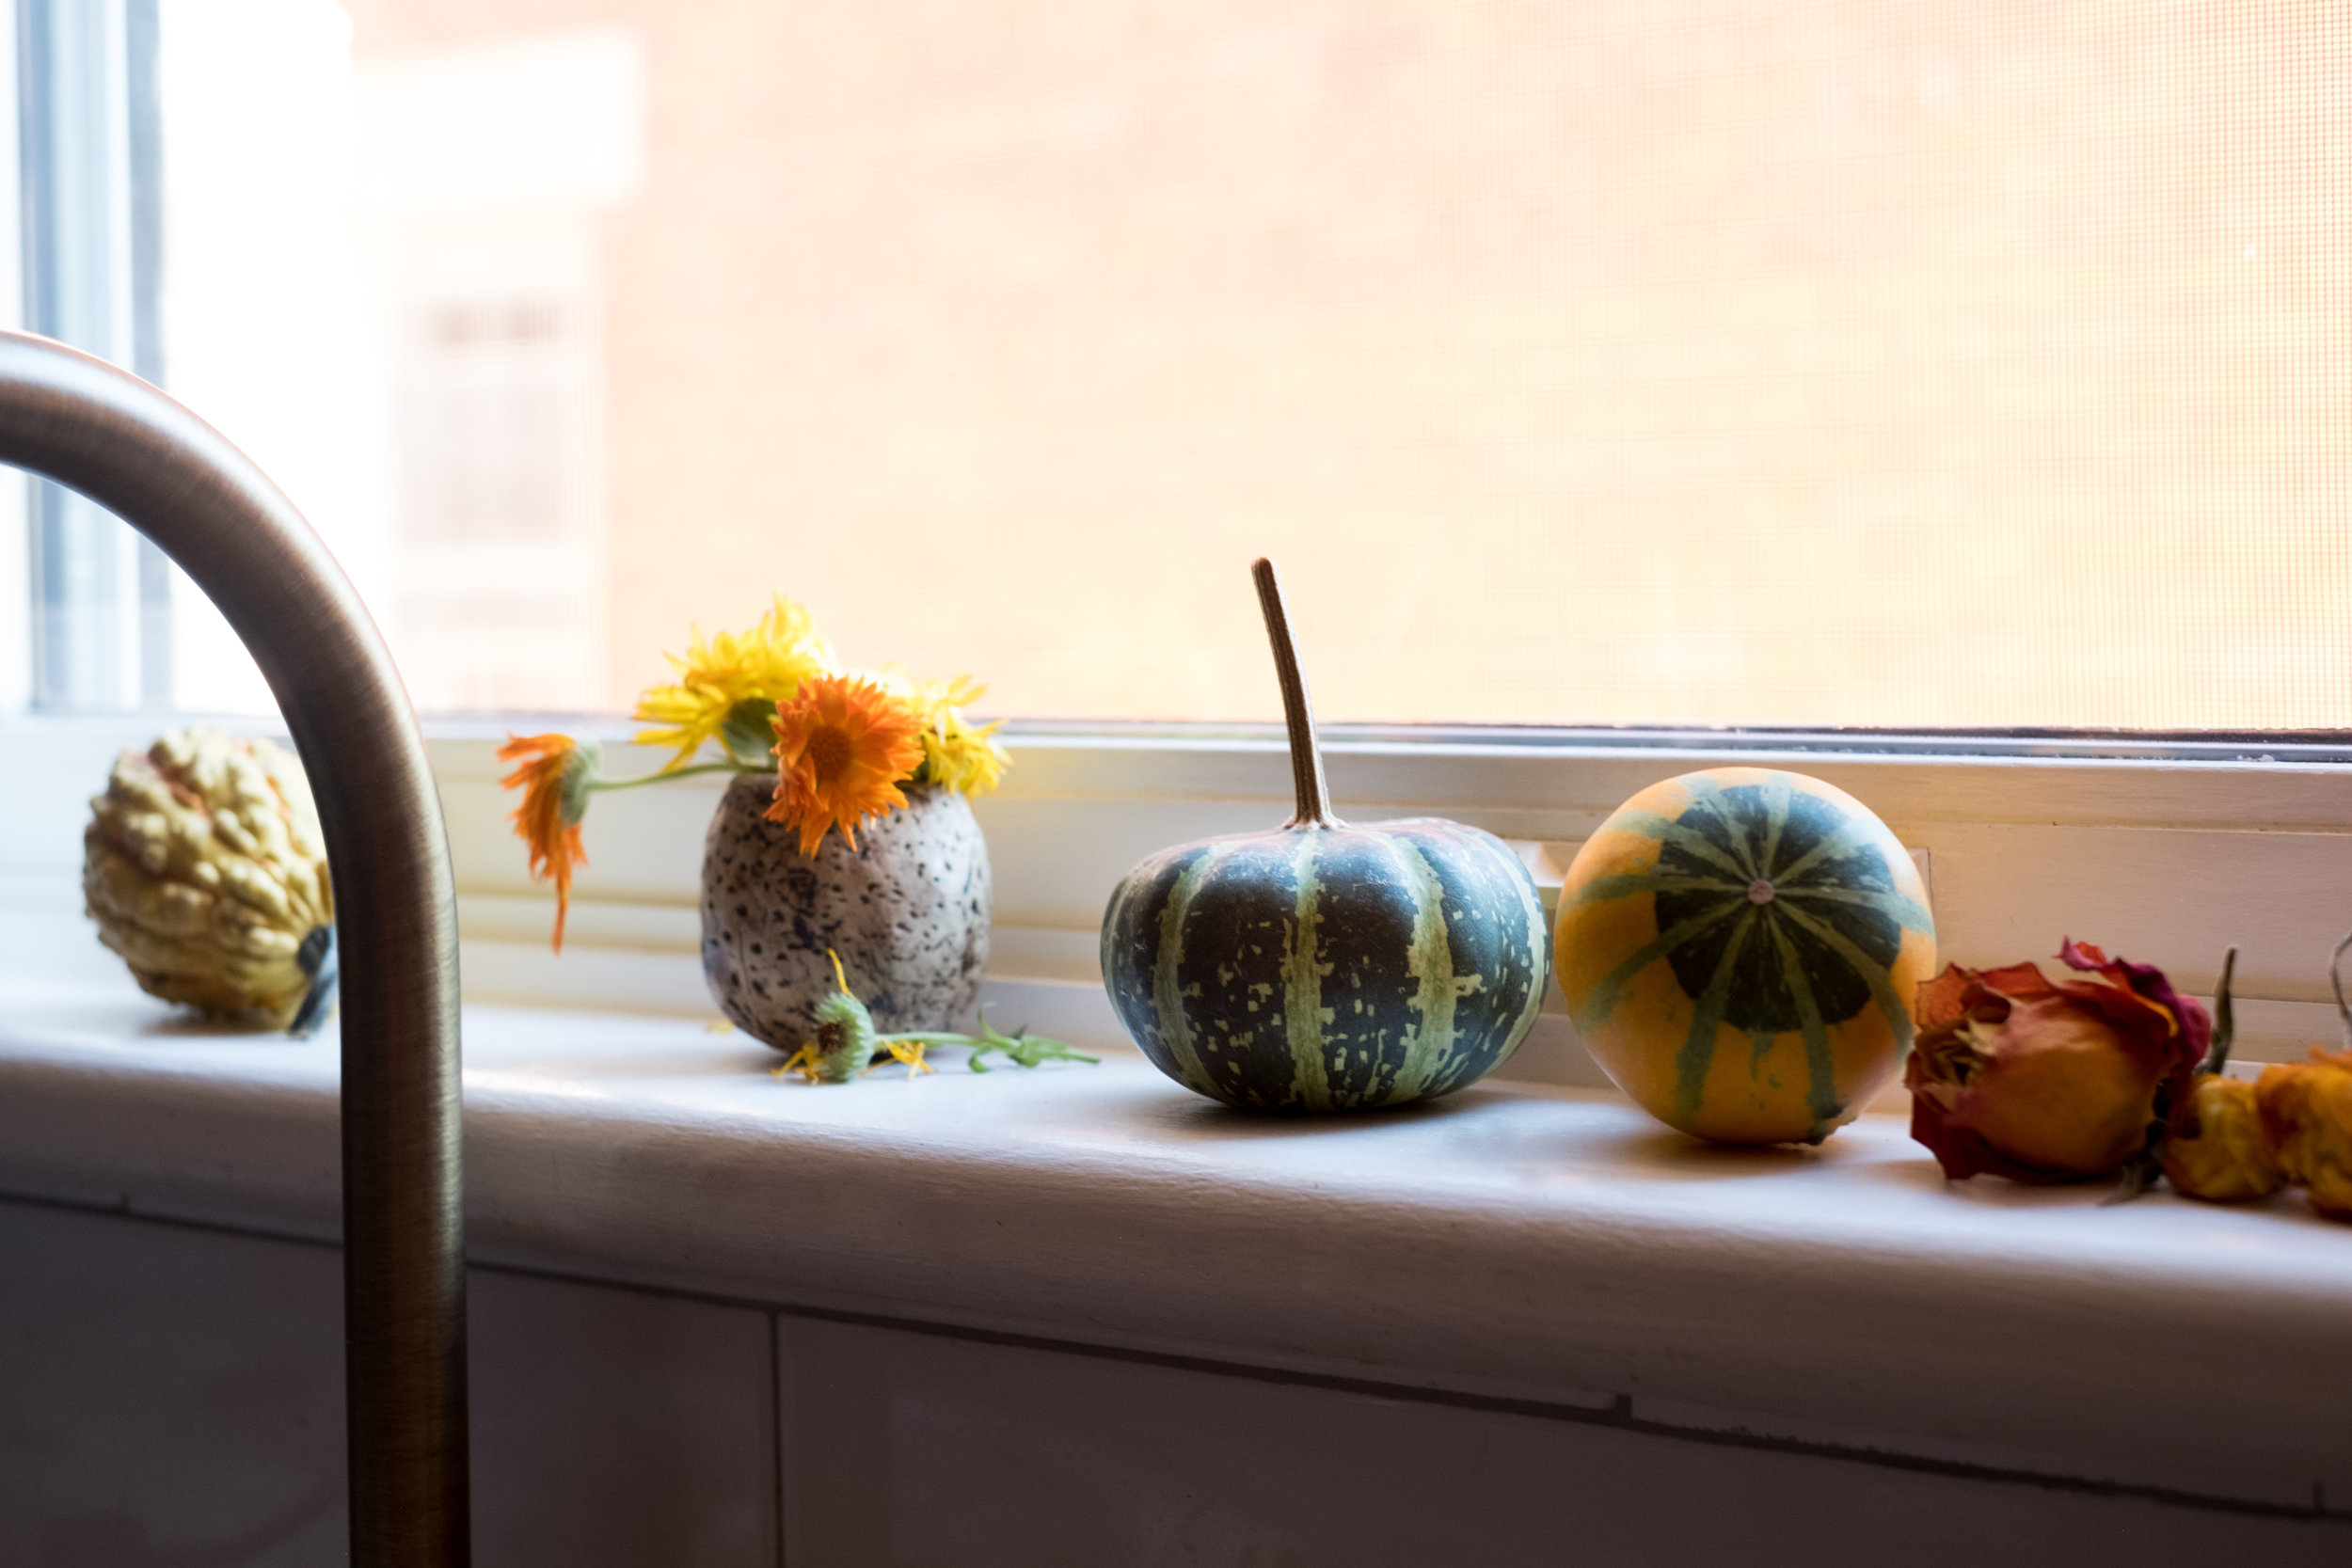 kitchen window sill as altar